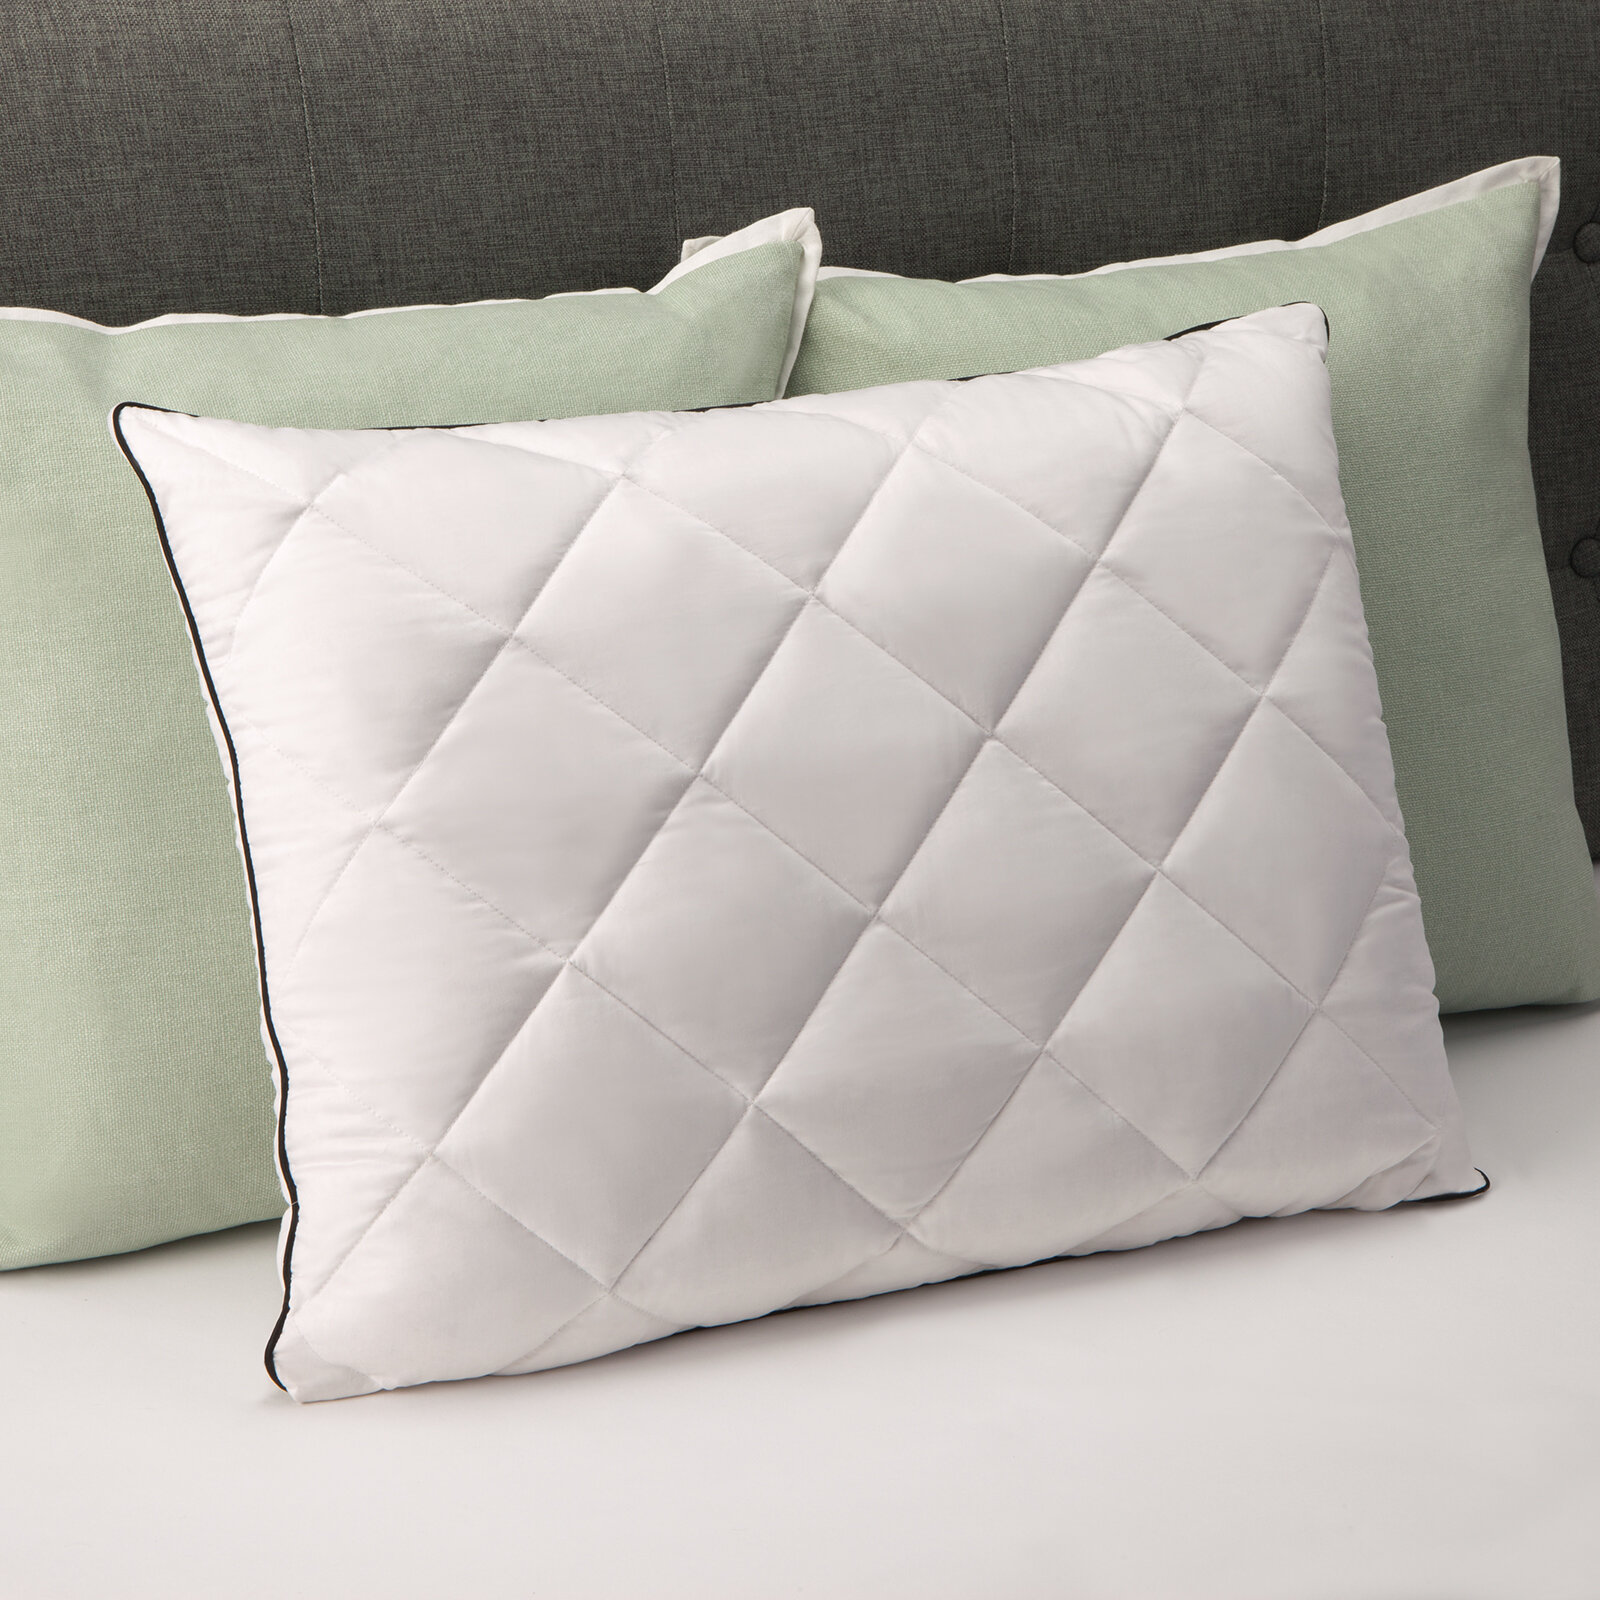 Comfort Revolution Plush Quilted Down Standard Pillow